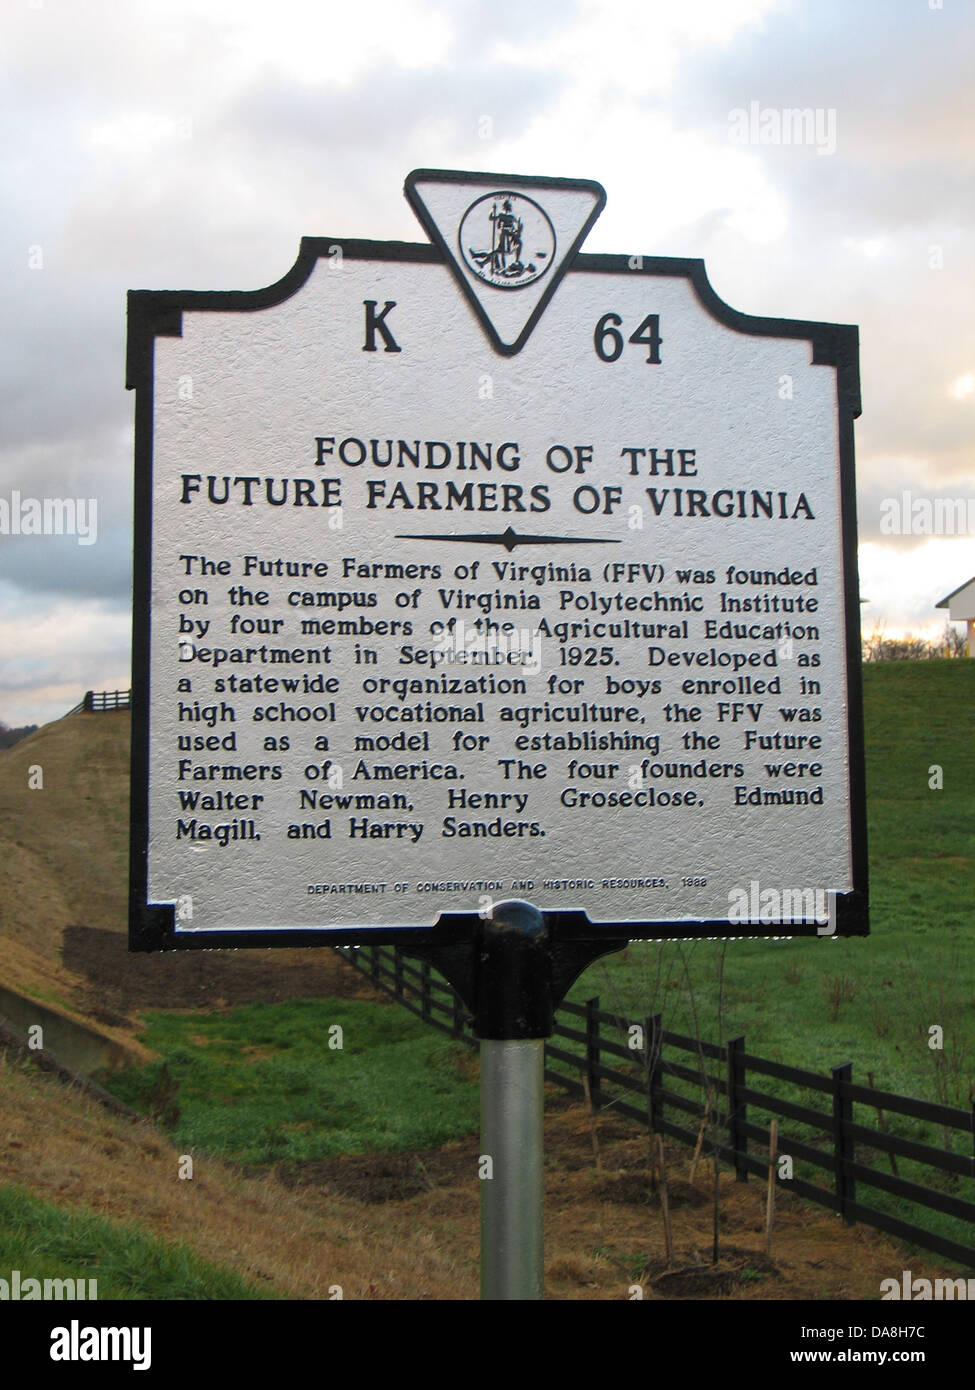 FOUNDING OF THE FUTURE FARMERS OF AMERICA The Future Farmers of Virginia (FFV) was founded on the campus of Virginia - Stock Image